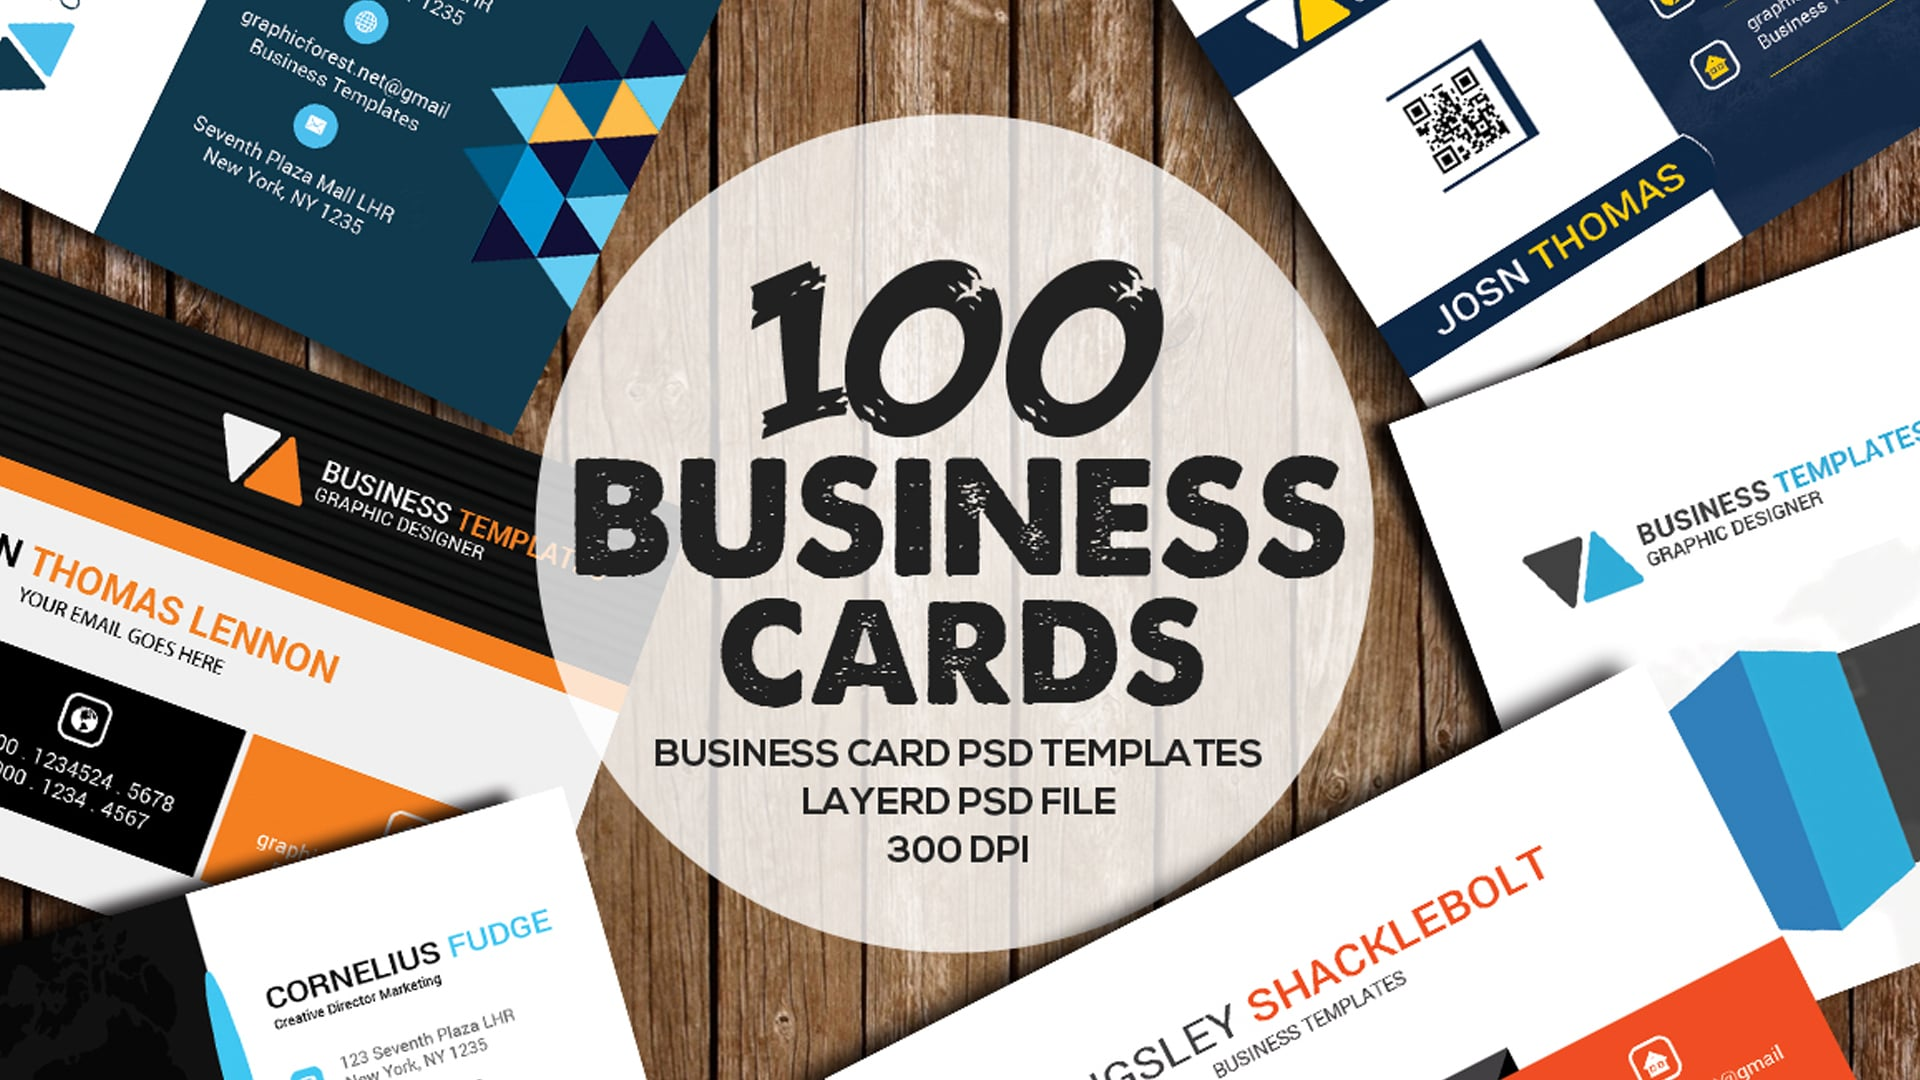 15 Best Photography Business Cards 2019 - 1920x10801